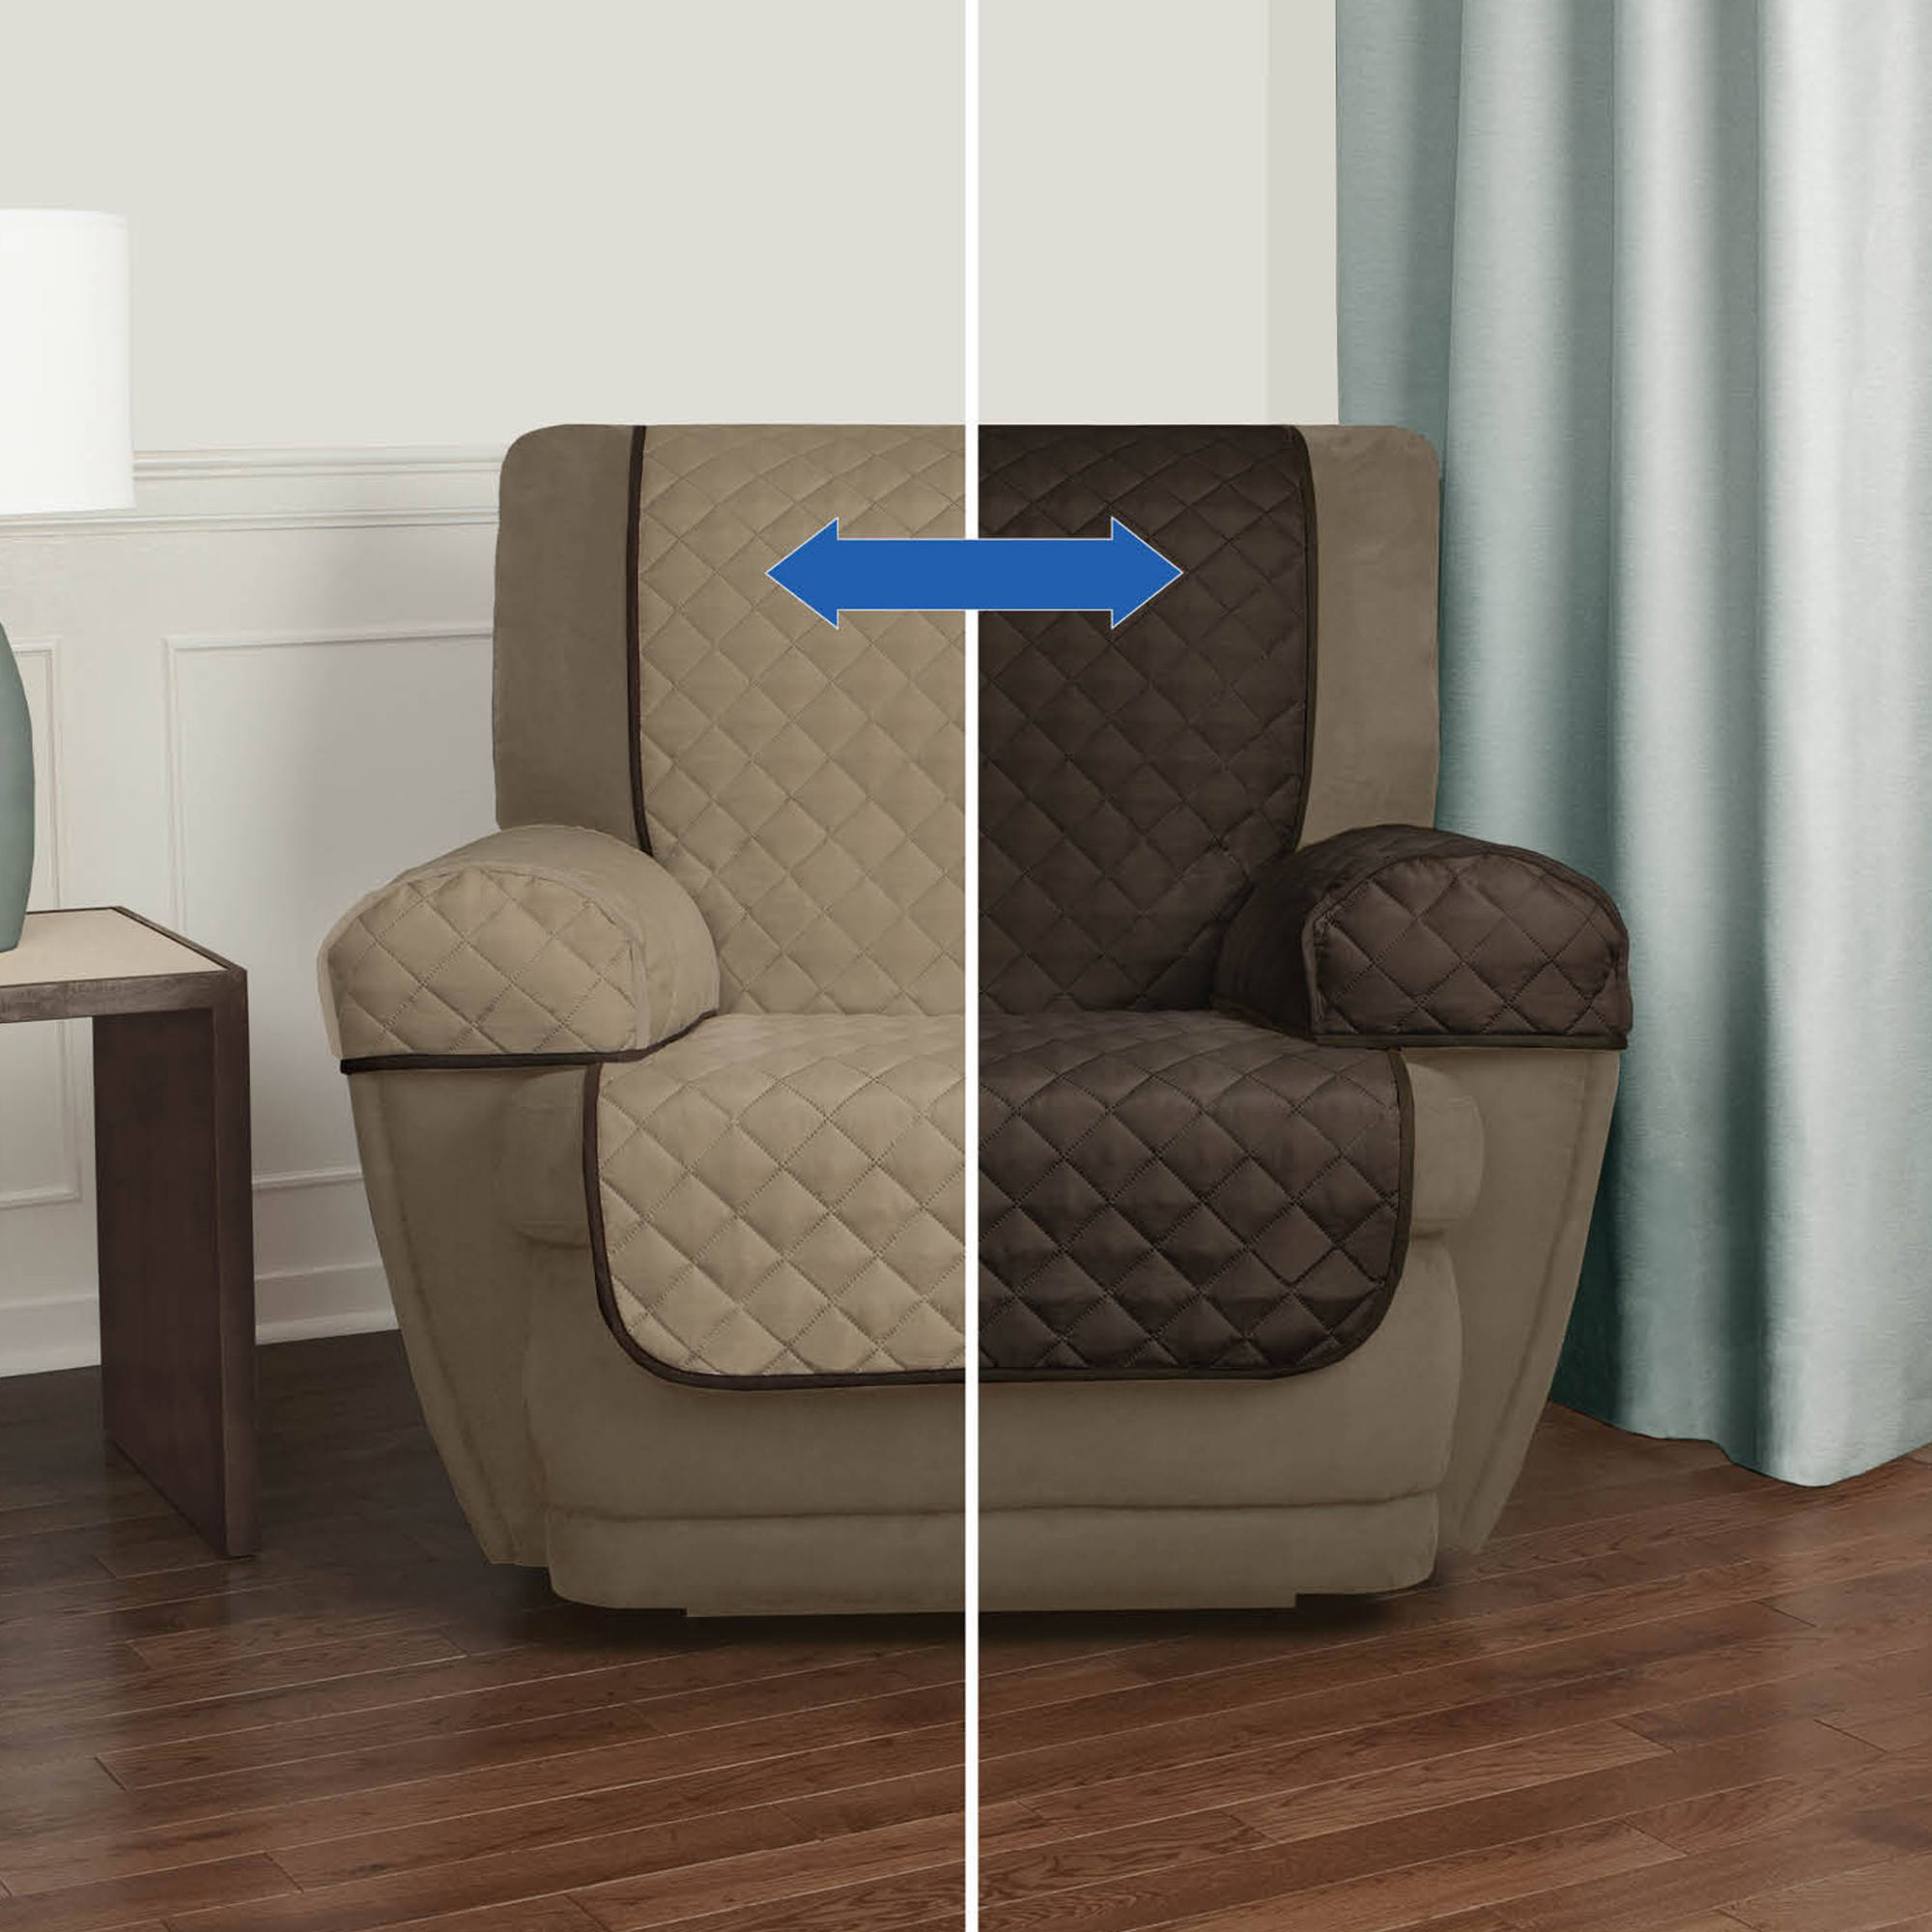 Mainstays Reversible Microfiber Fabric Pet/Furniture Recliner Chair Cover & Mainstays Reversible Microfiber Fabric Pet/Furniture Recliner ... islam-shia.org